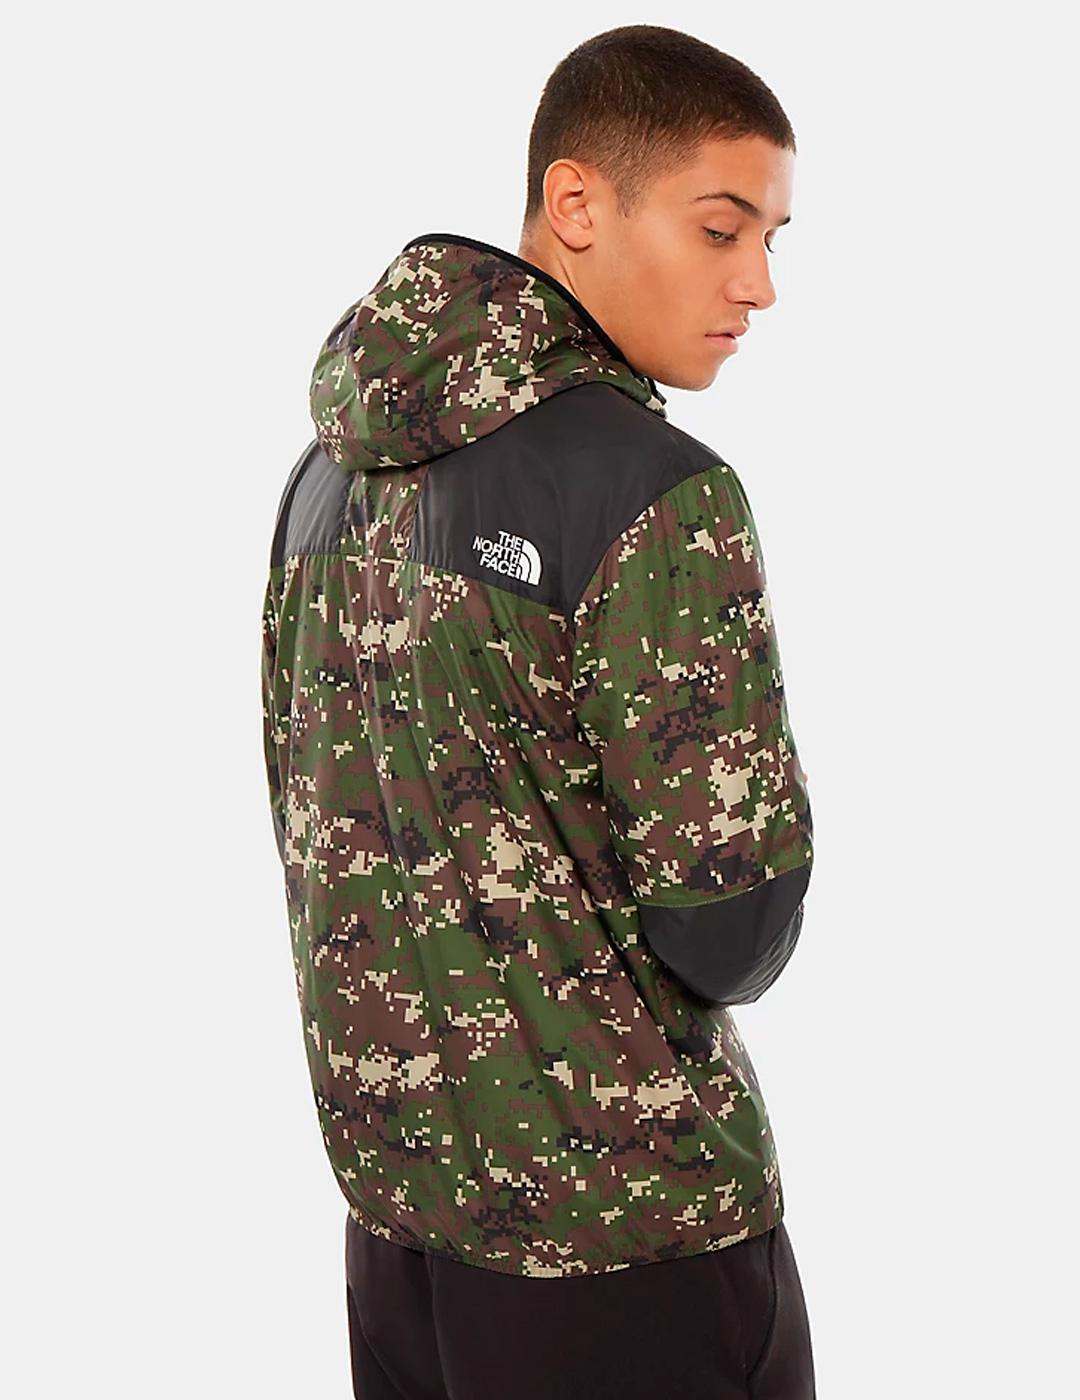 Chubasquero The North Face M 1985 SEASONAL - Englsh camo